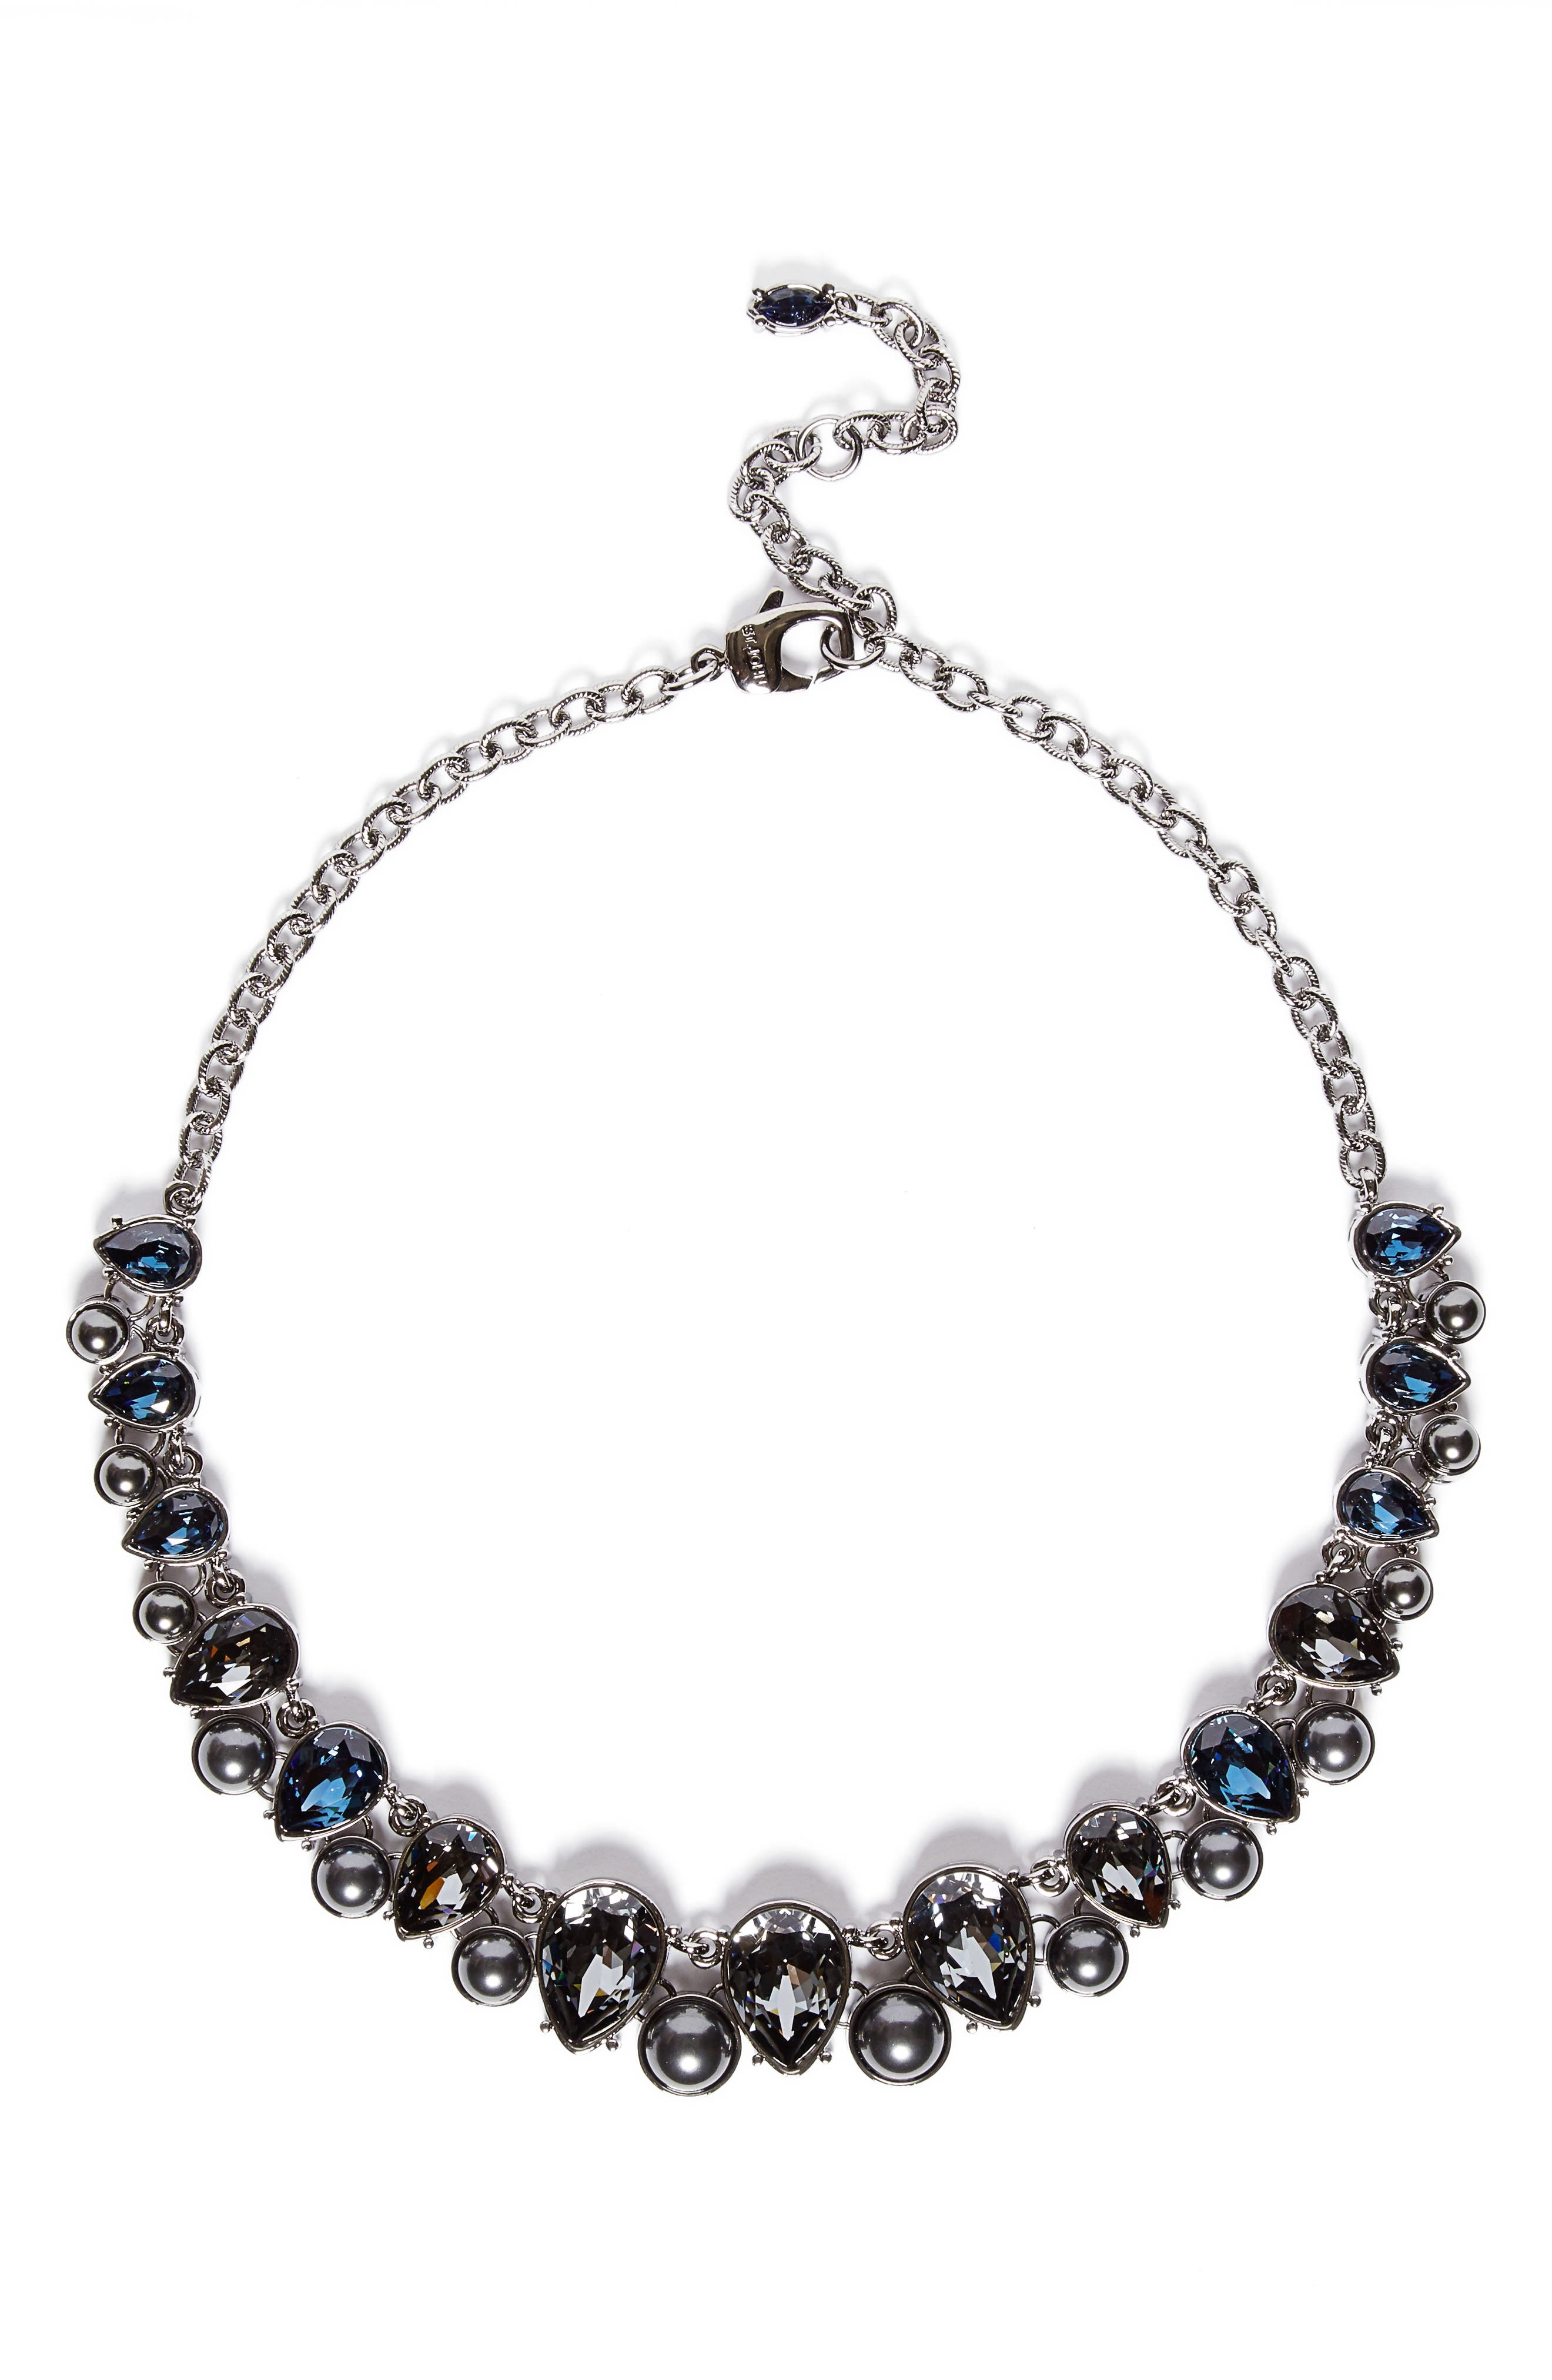 Swarovski Crystal & Imitation Pearl Necklace,                         Main,                         color, Drk Ruth/Crys Blk Prl/Csn/Mont